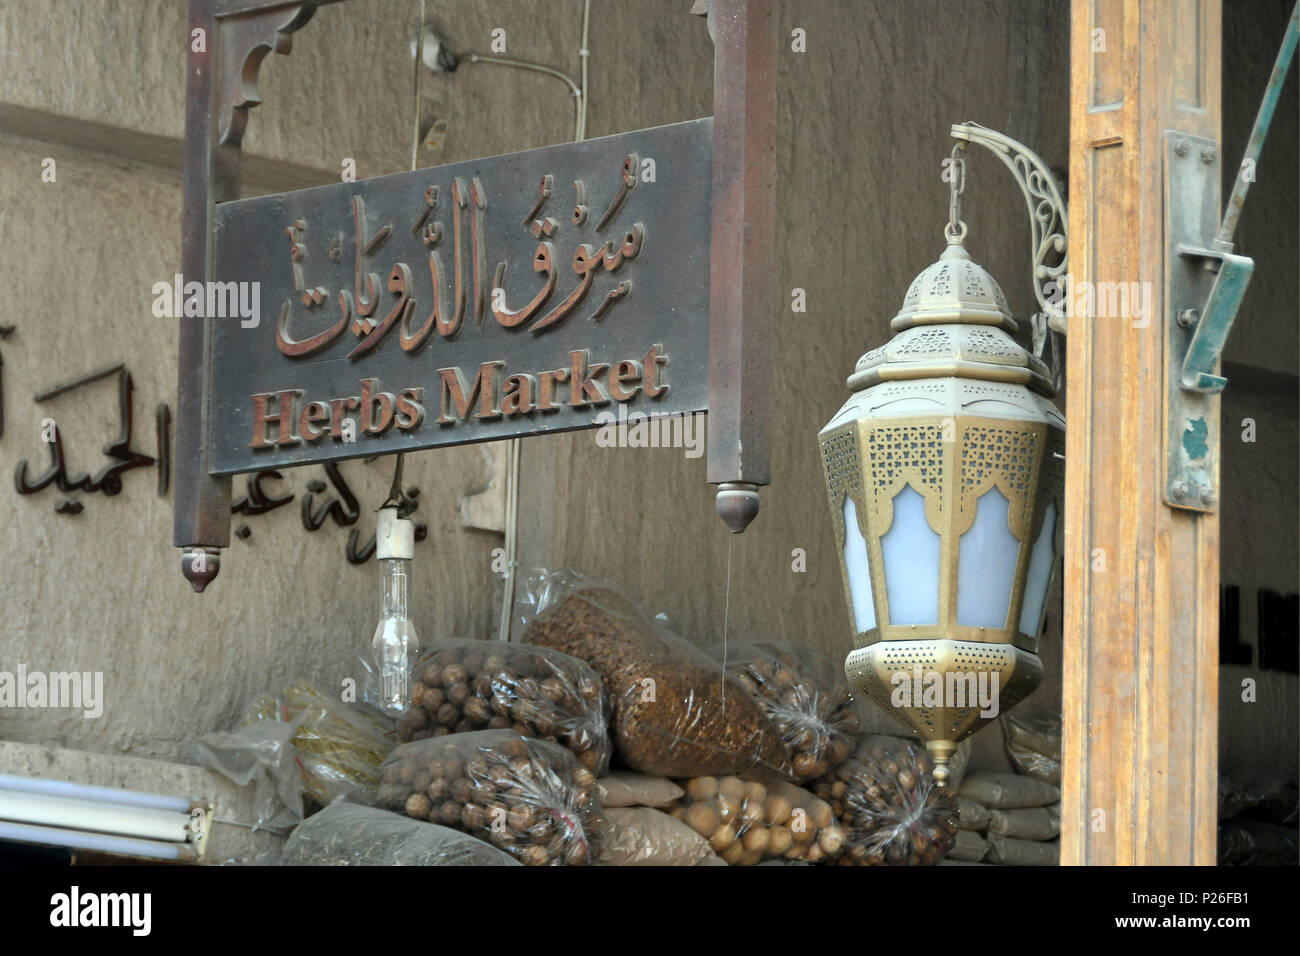 Dubai Market, souq, United Arab Emirates, Emirati, Middle East, Middle Eastern - Stock Image